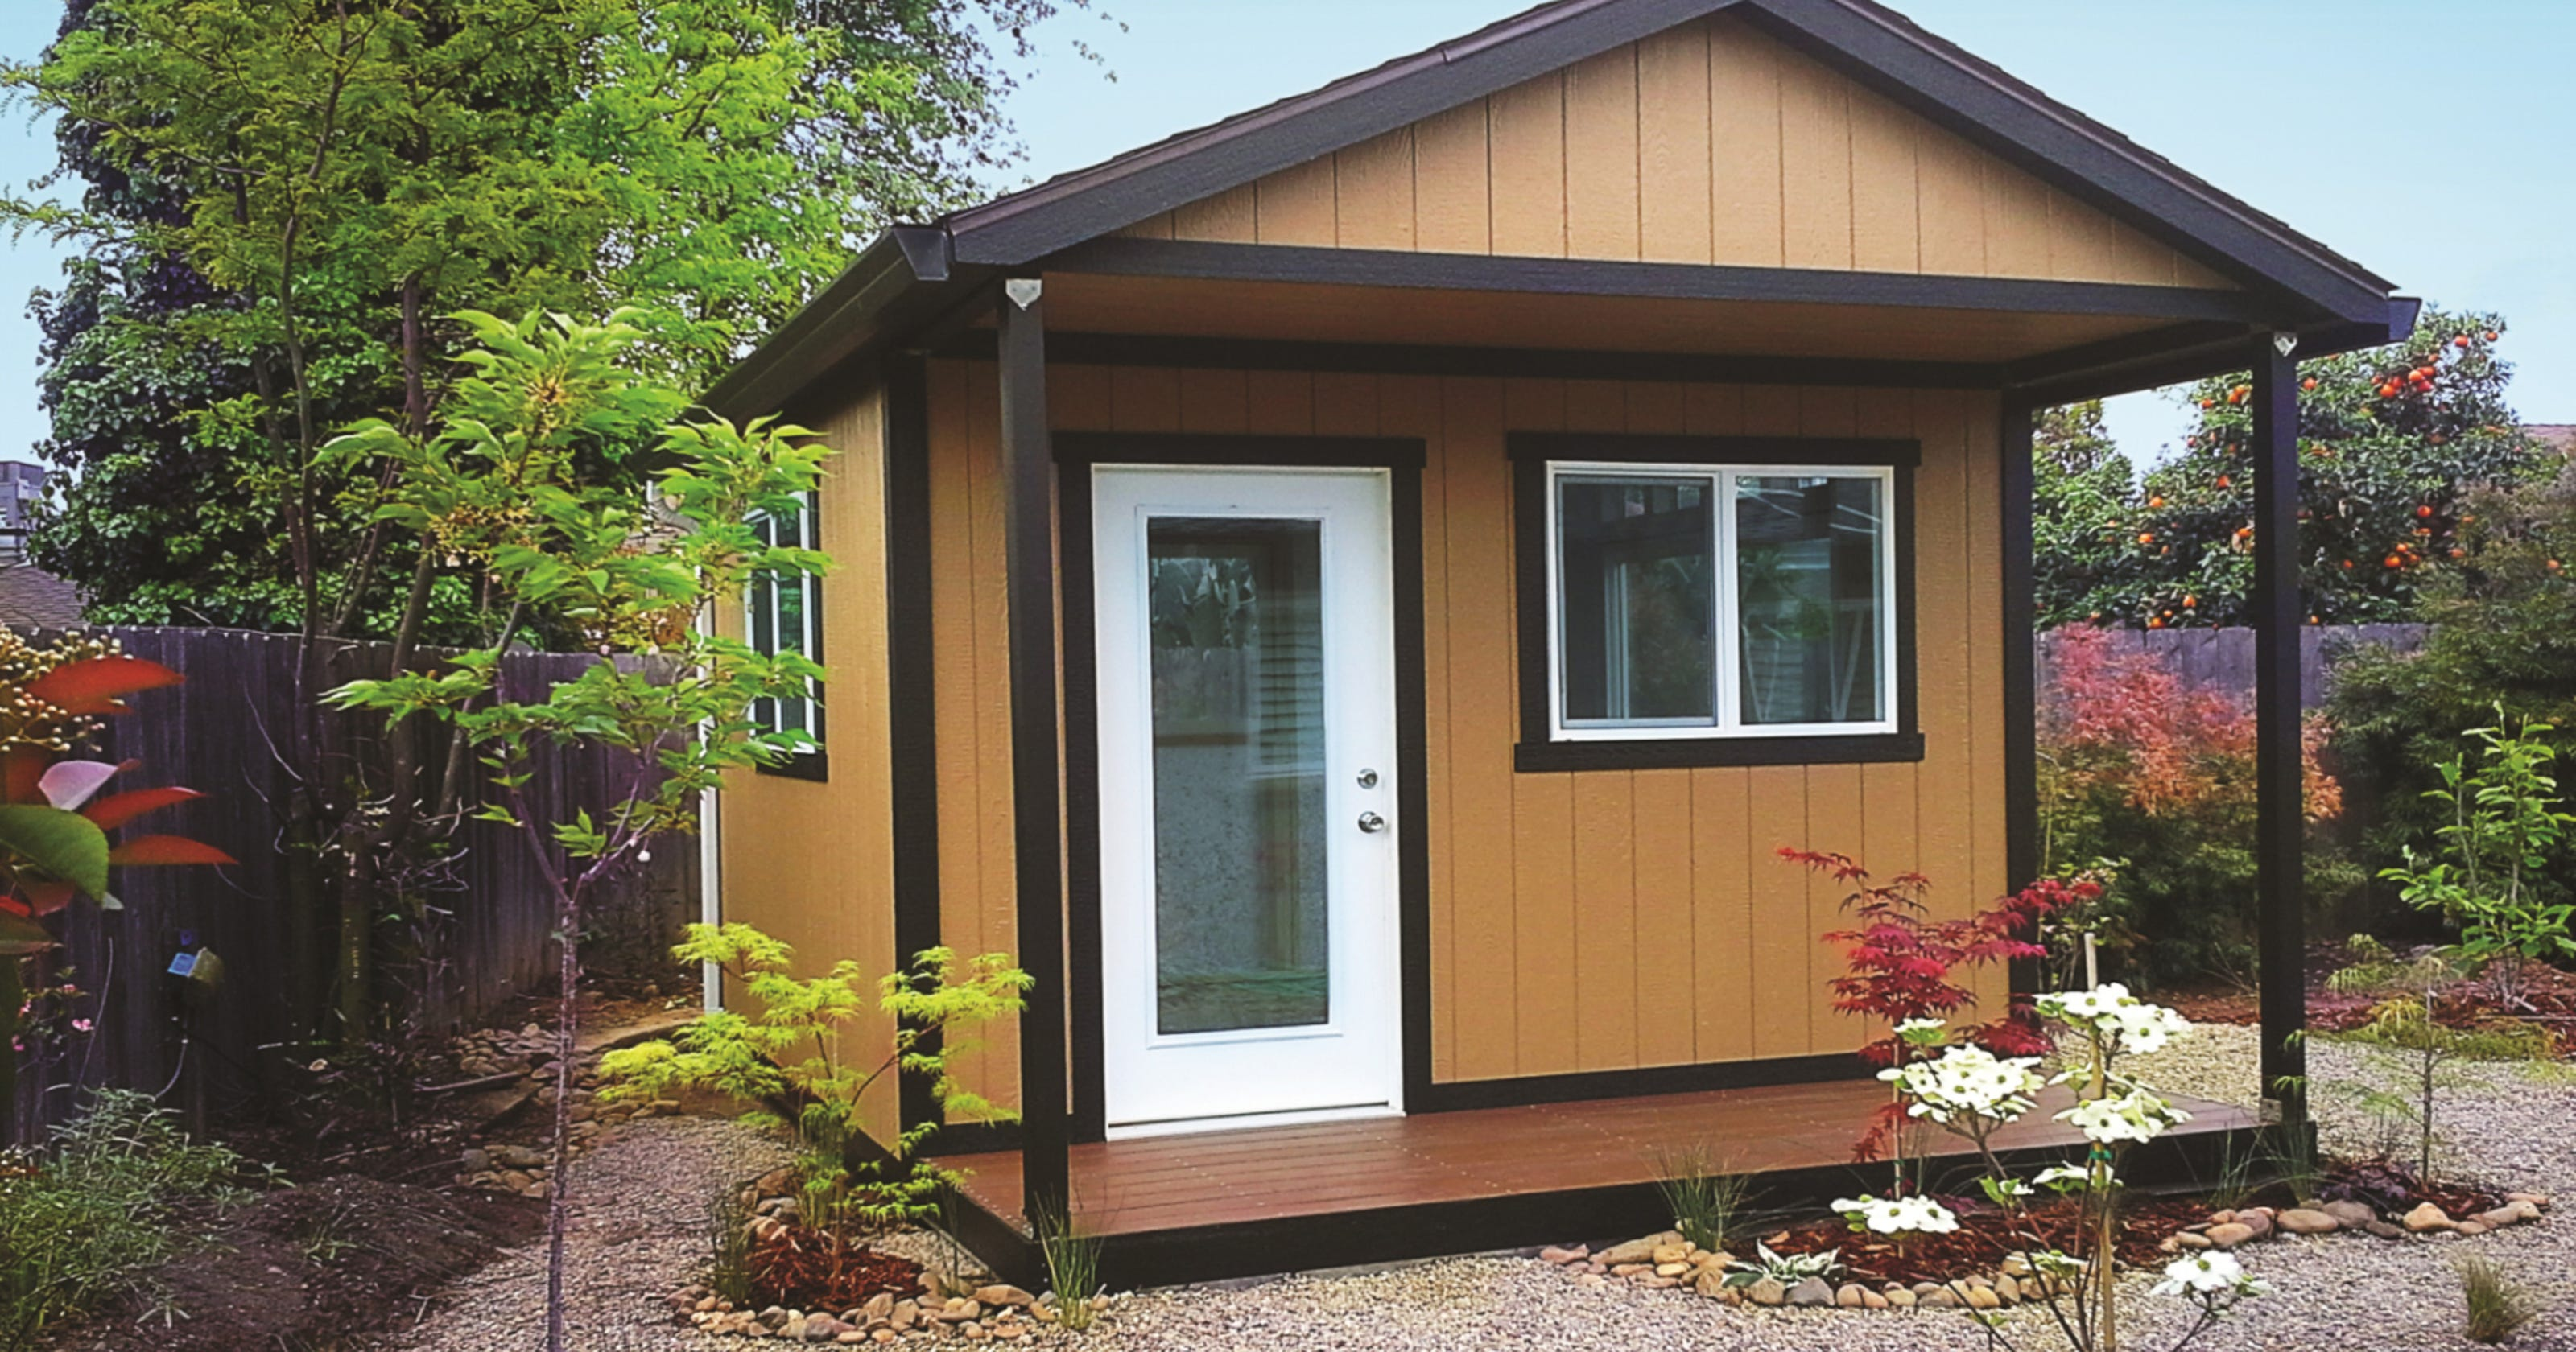 Do you have room for backyard storage?